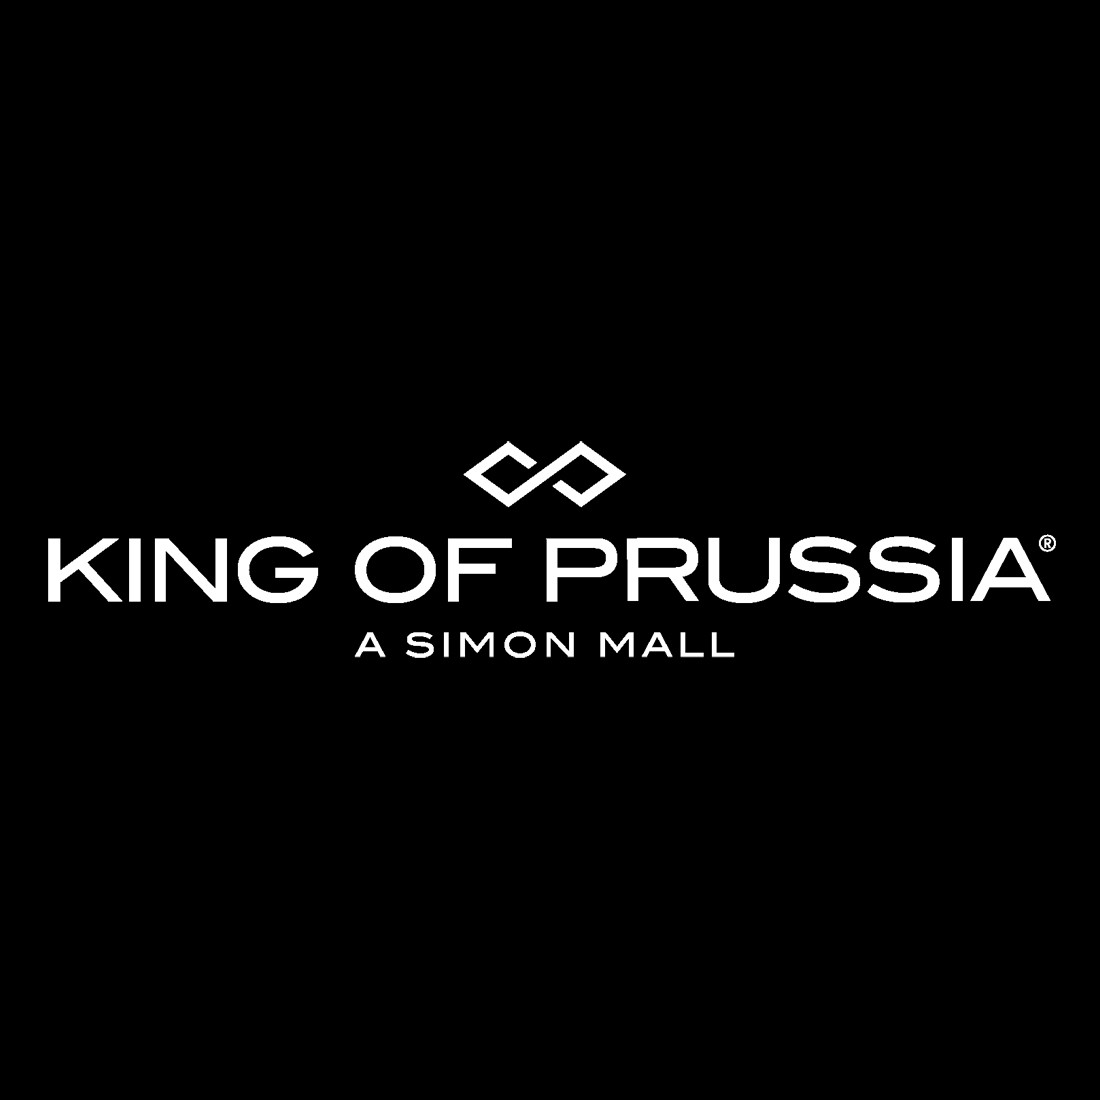 King of Prussia 160 N Gulph Rd King of Prussia, PA Shopping Centers Kop Mall Directory Map on franklin mills mall directory, chandler fashion center mall directory, north star mall directory, westfarms mall directory, crabtree valley mall directory, pentagon city mall directory, fair oaks mall directory, montgomery mall directory, la cantera mall directory, concord mills mall directory, park meadows mall directory, victoria gardens mall directory, palm beach gardens mall directory, pembroke lakes mall directory, greenbrier mall directory, arundel mills mall directory,